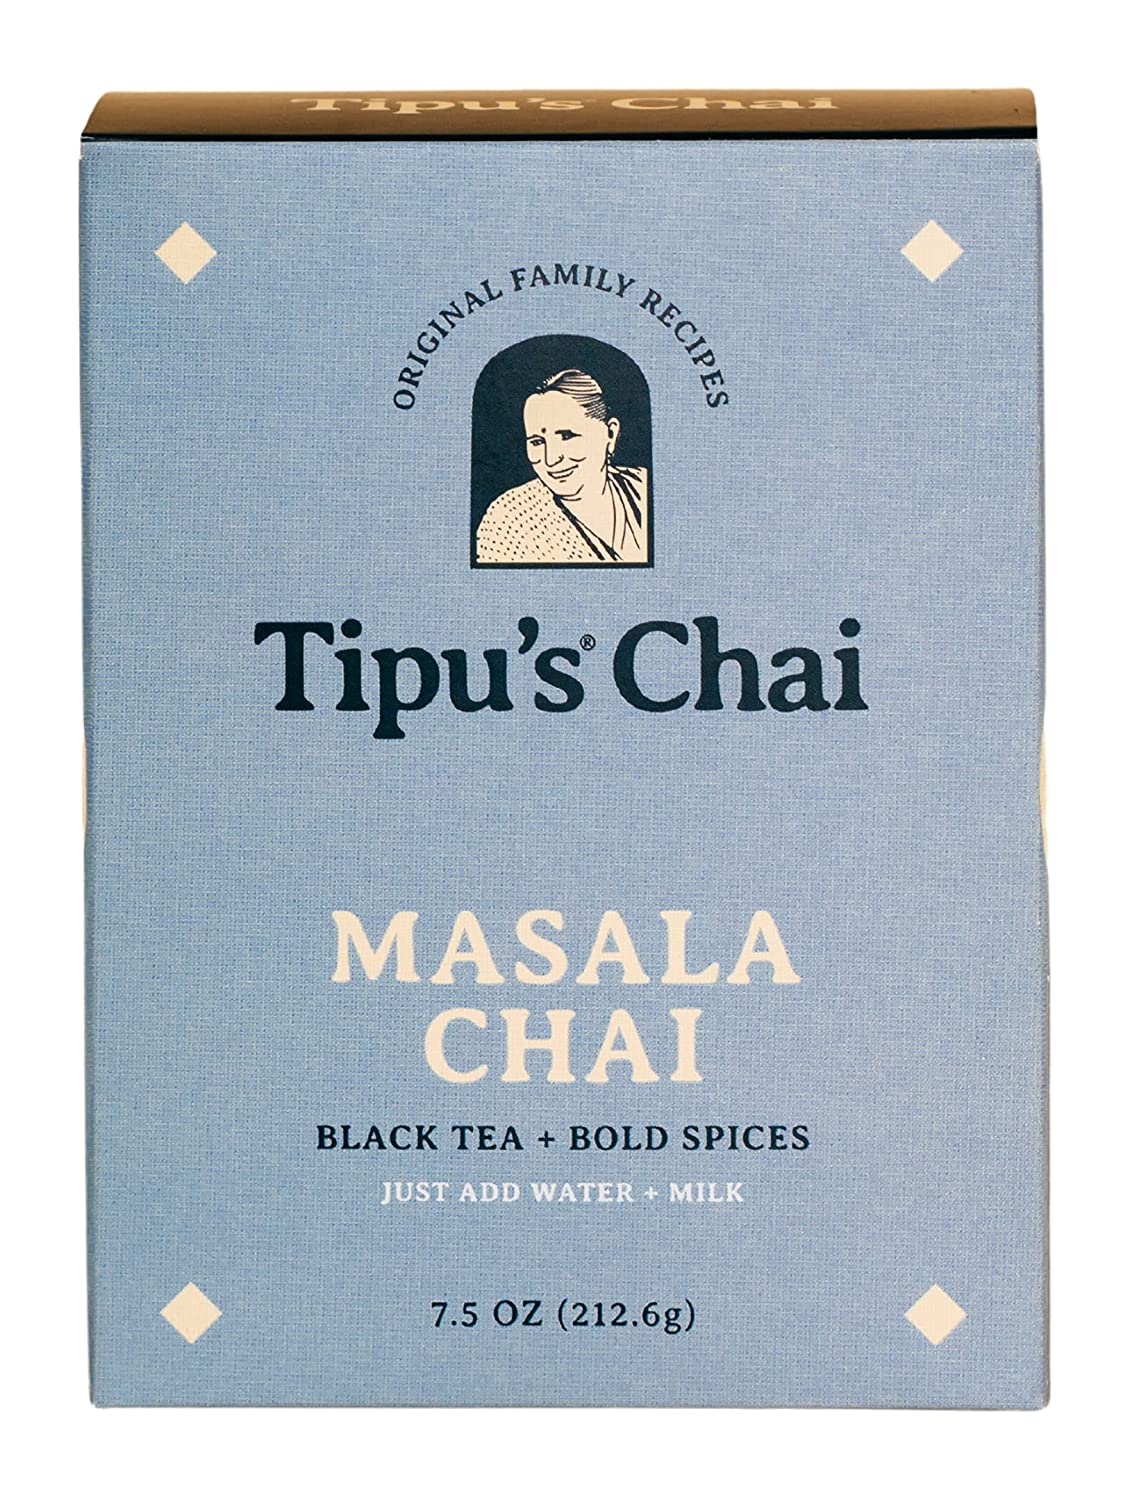 Cheap mail order specialty store Tipu's Chai Now Masala Sweetened Max 86% OFF